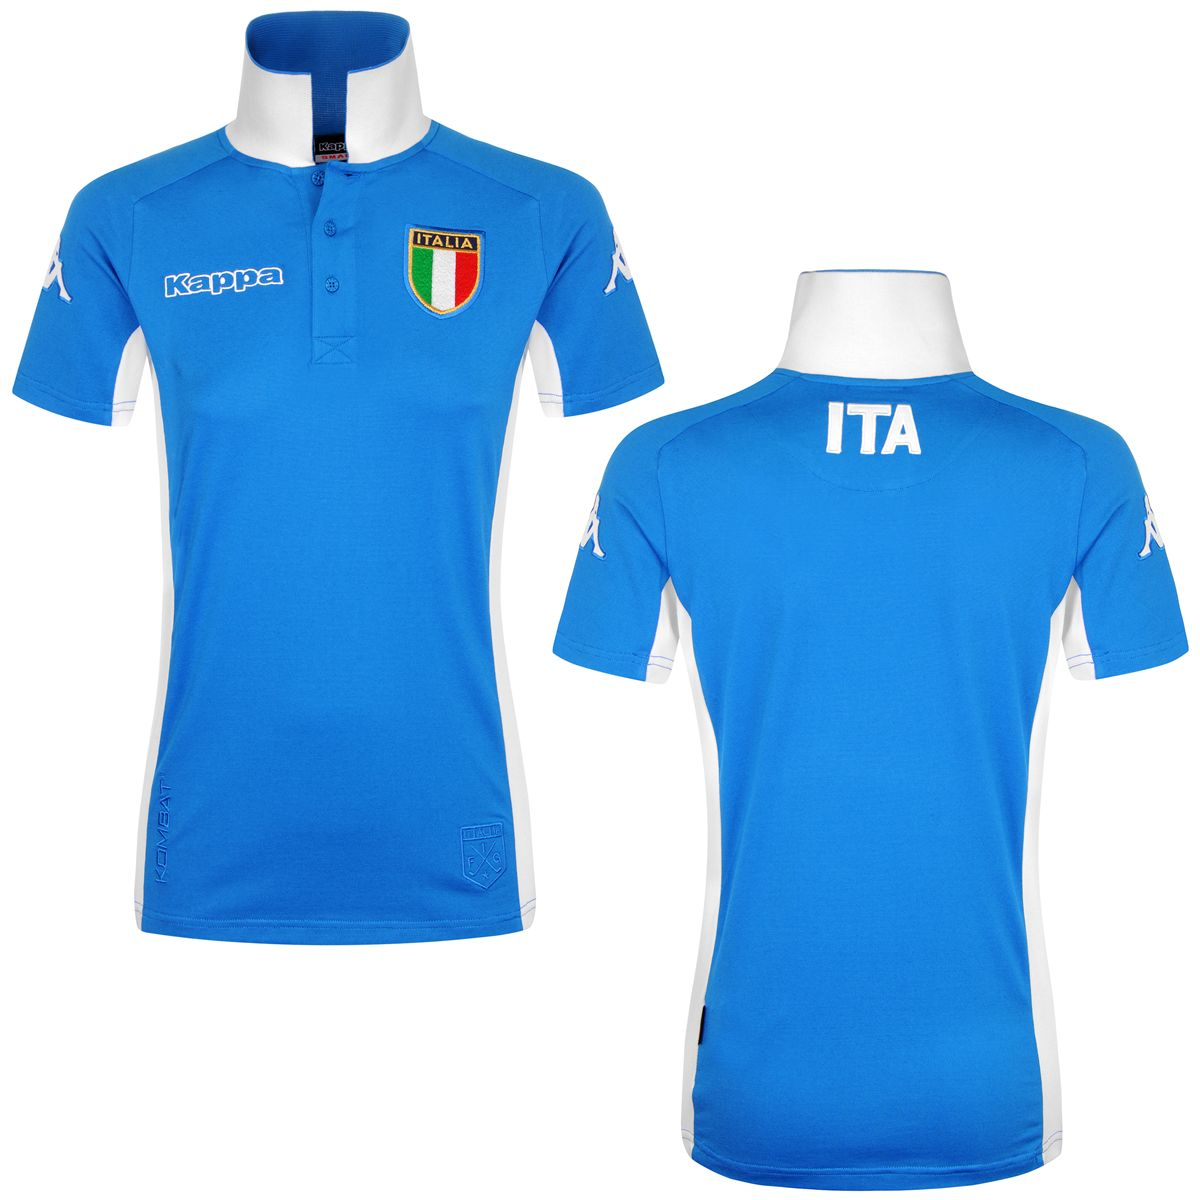 Active Jerseys Kappa for woman-303X1E0FIG